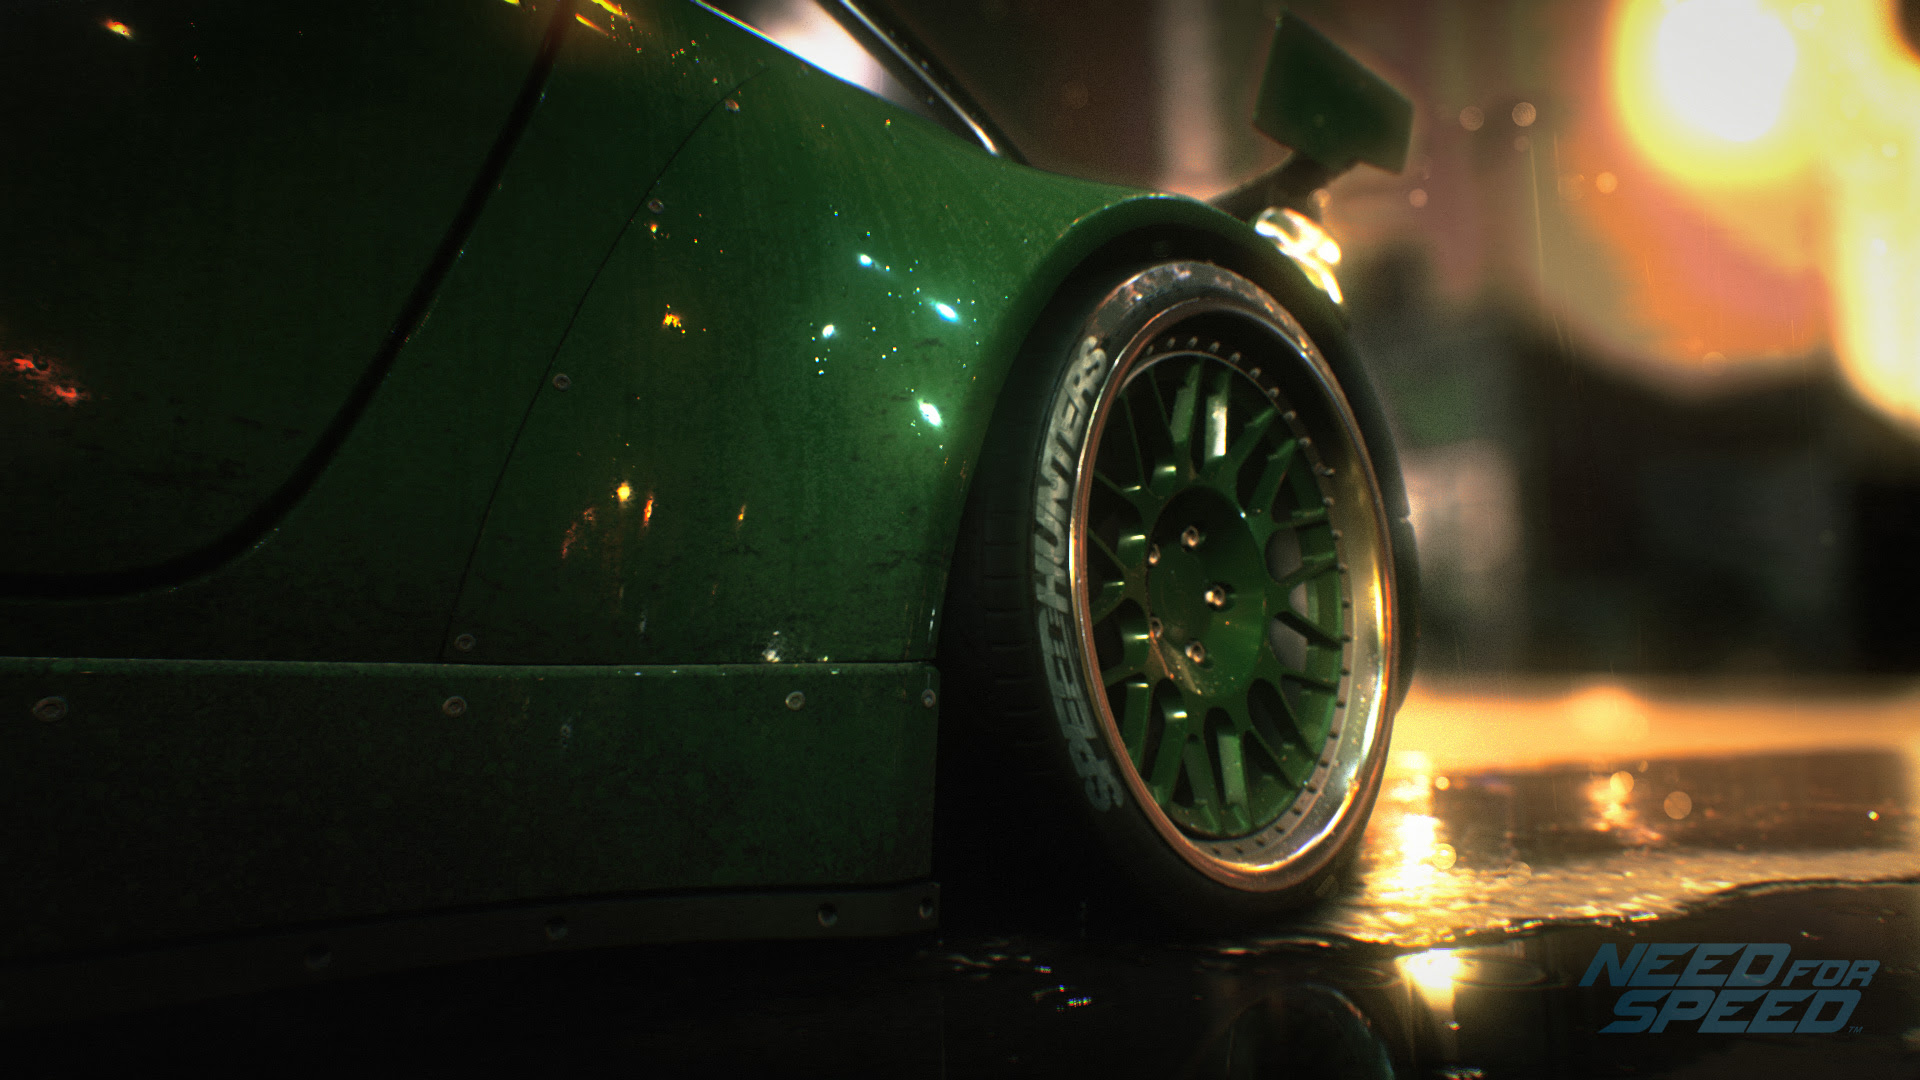 A Need For Speed Game In 2016 Ea Is Not Sure Vg247